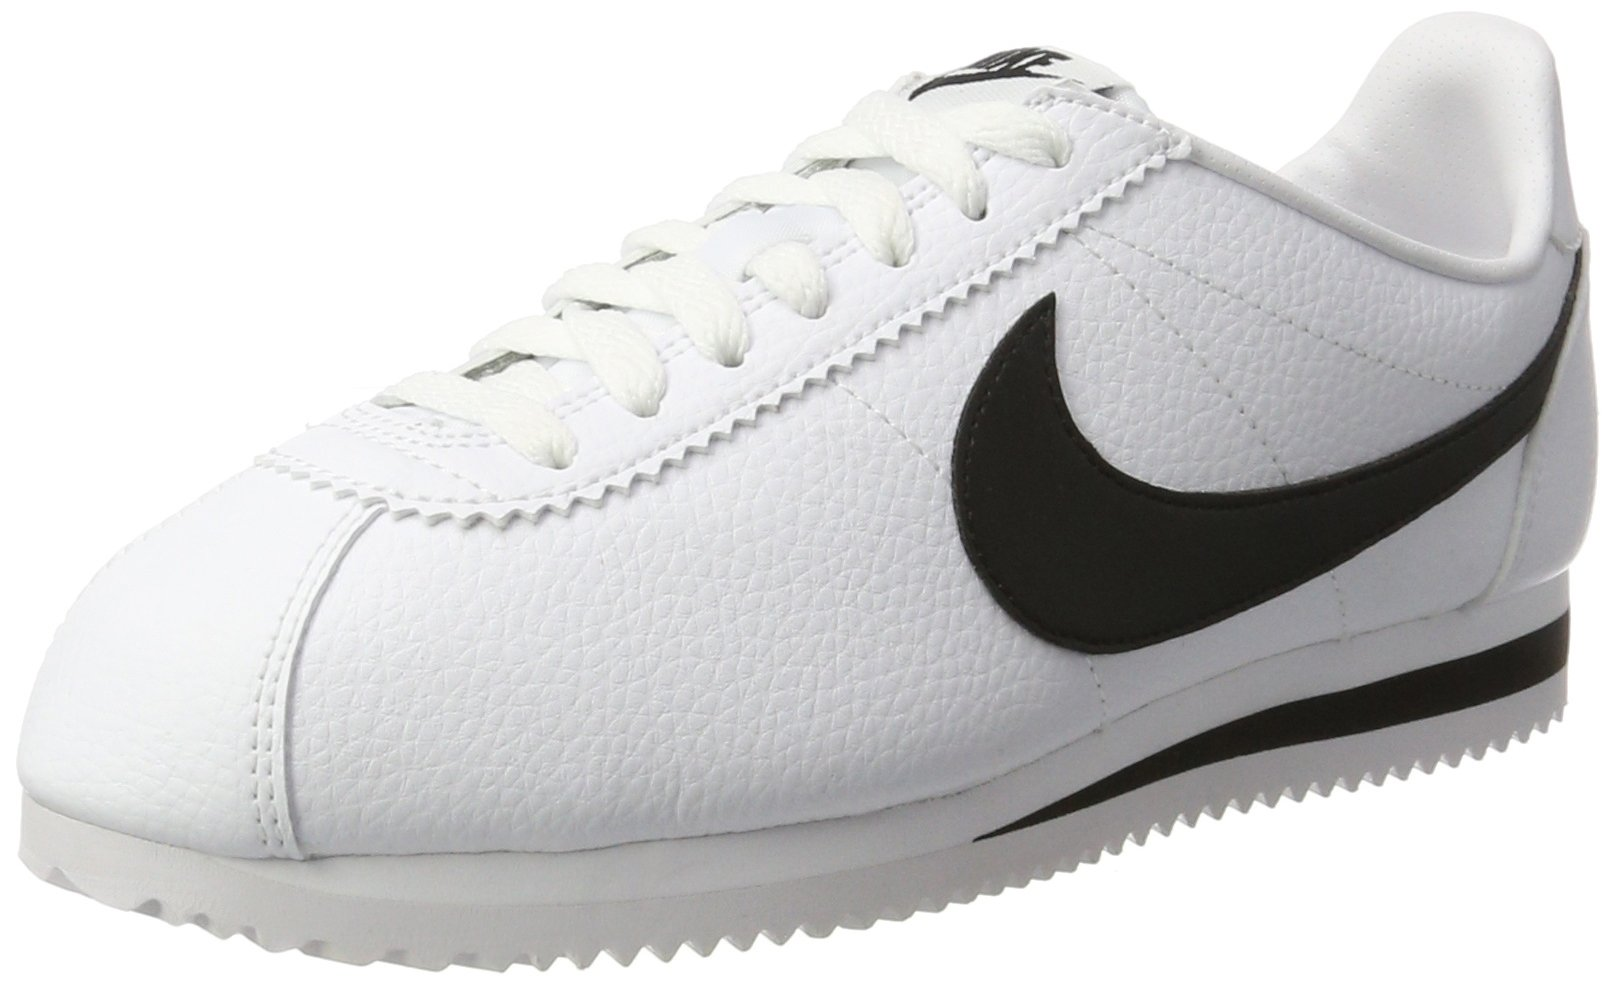 cheap for discount 03df5 f9508 Nike Mens Classic Cortez White Black Leather Trainers 41 EU